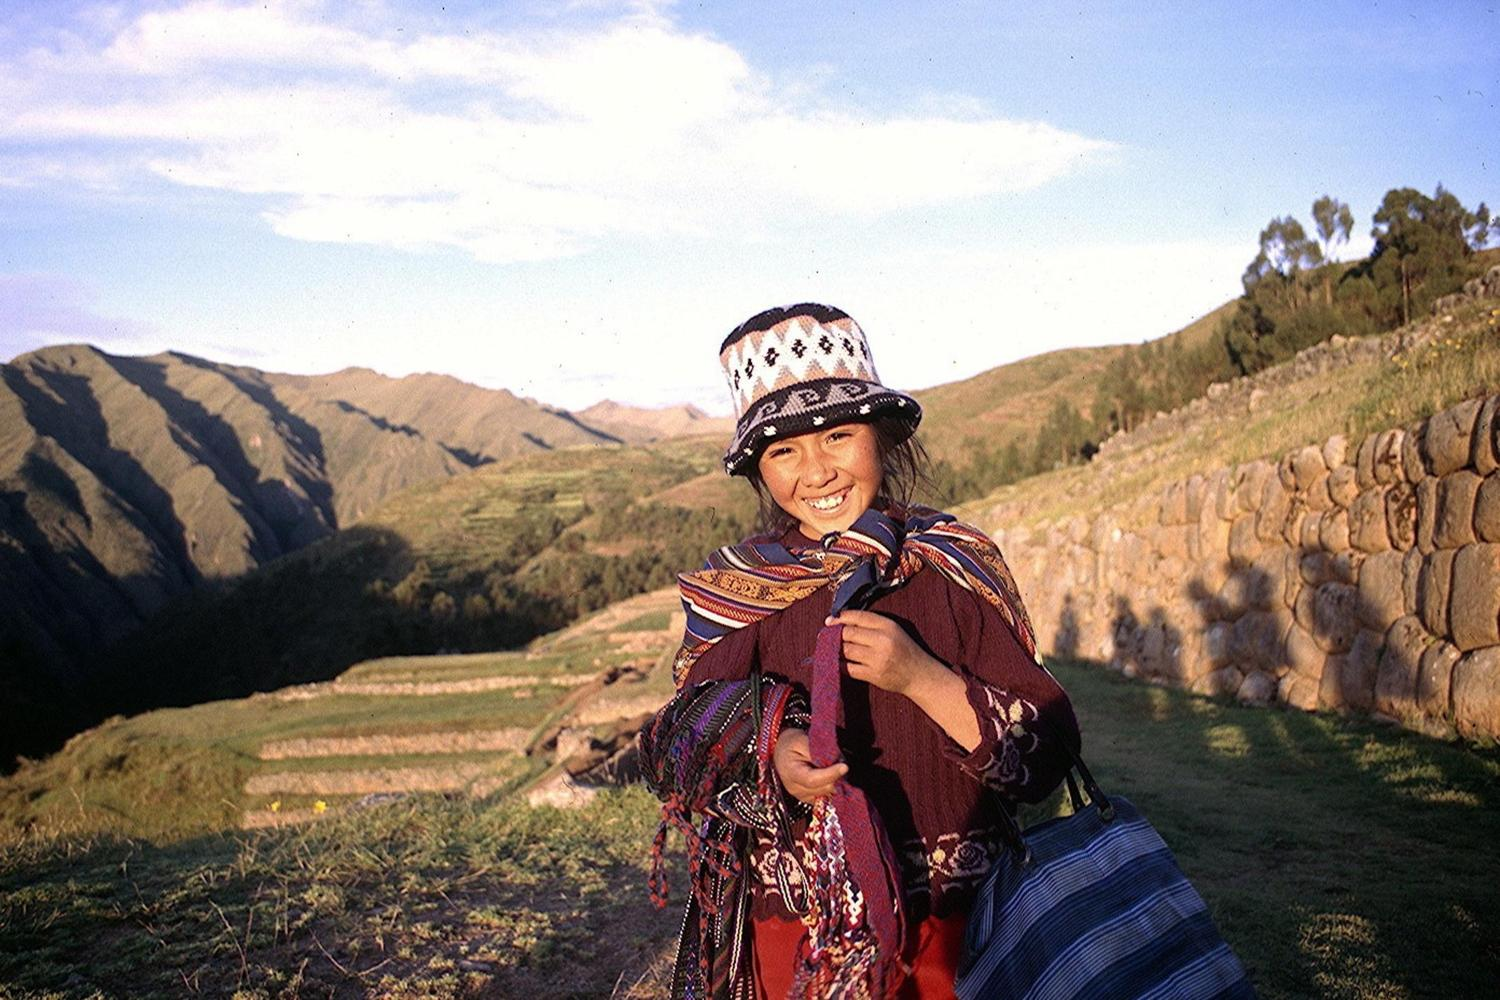 Selling trinkets in the Sacred Valley, Peru